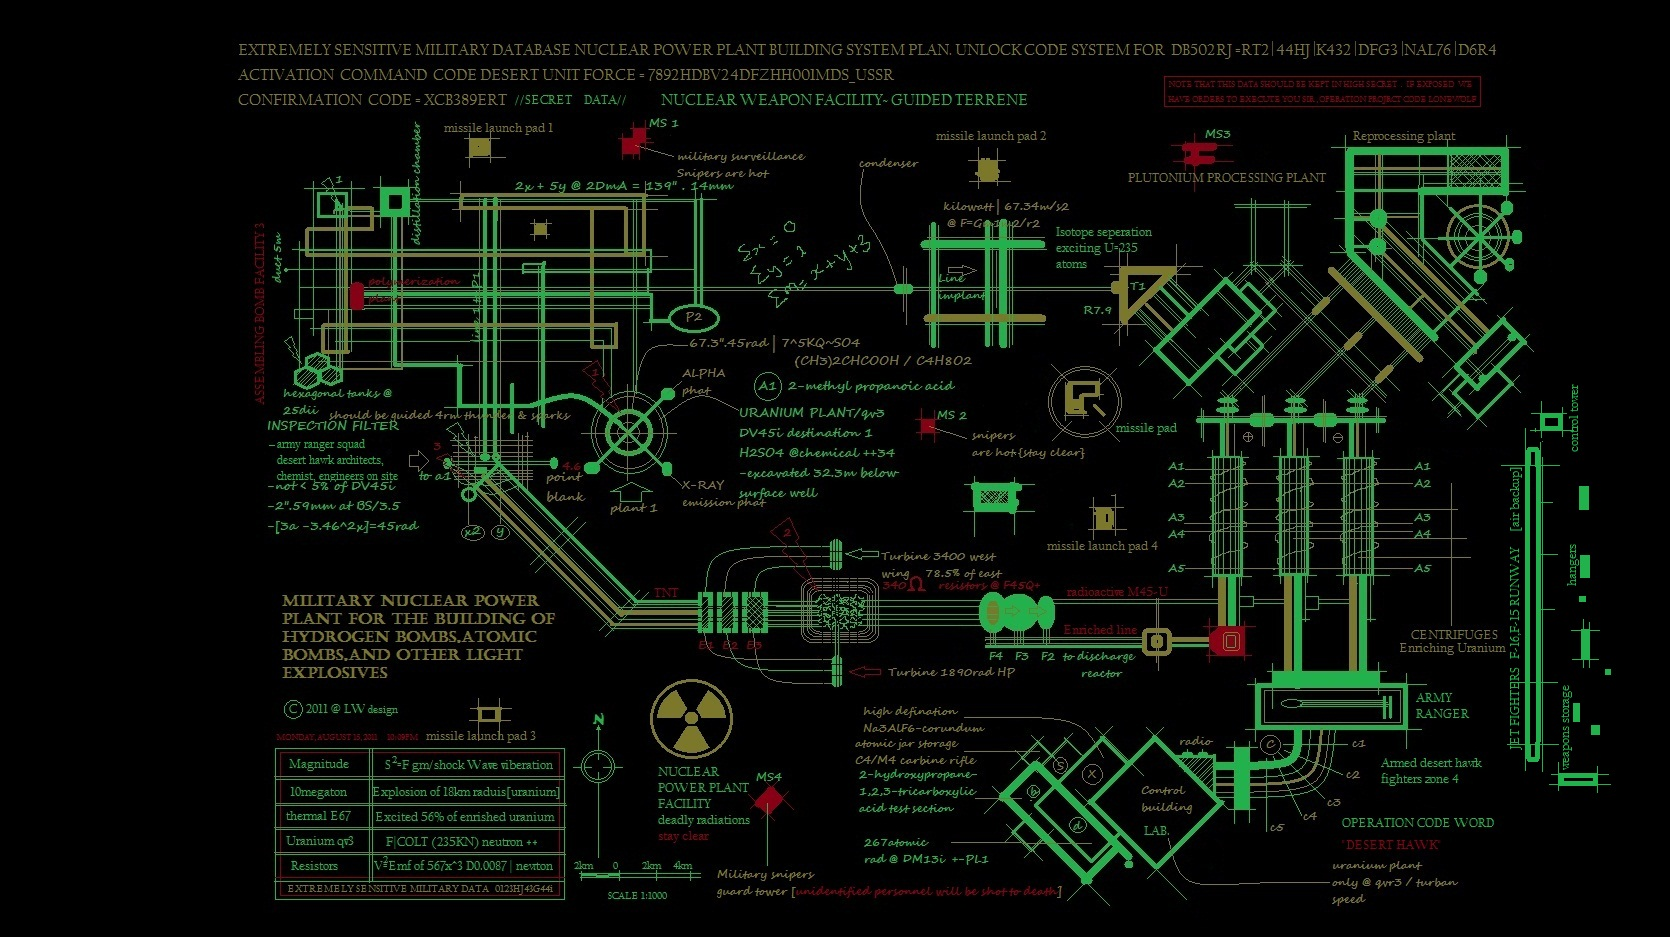 Nuclear plant Wallpaper and Background Image 1670x937 ID 1670x937